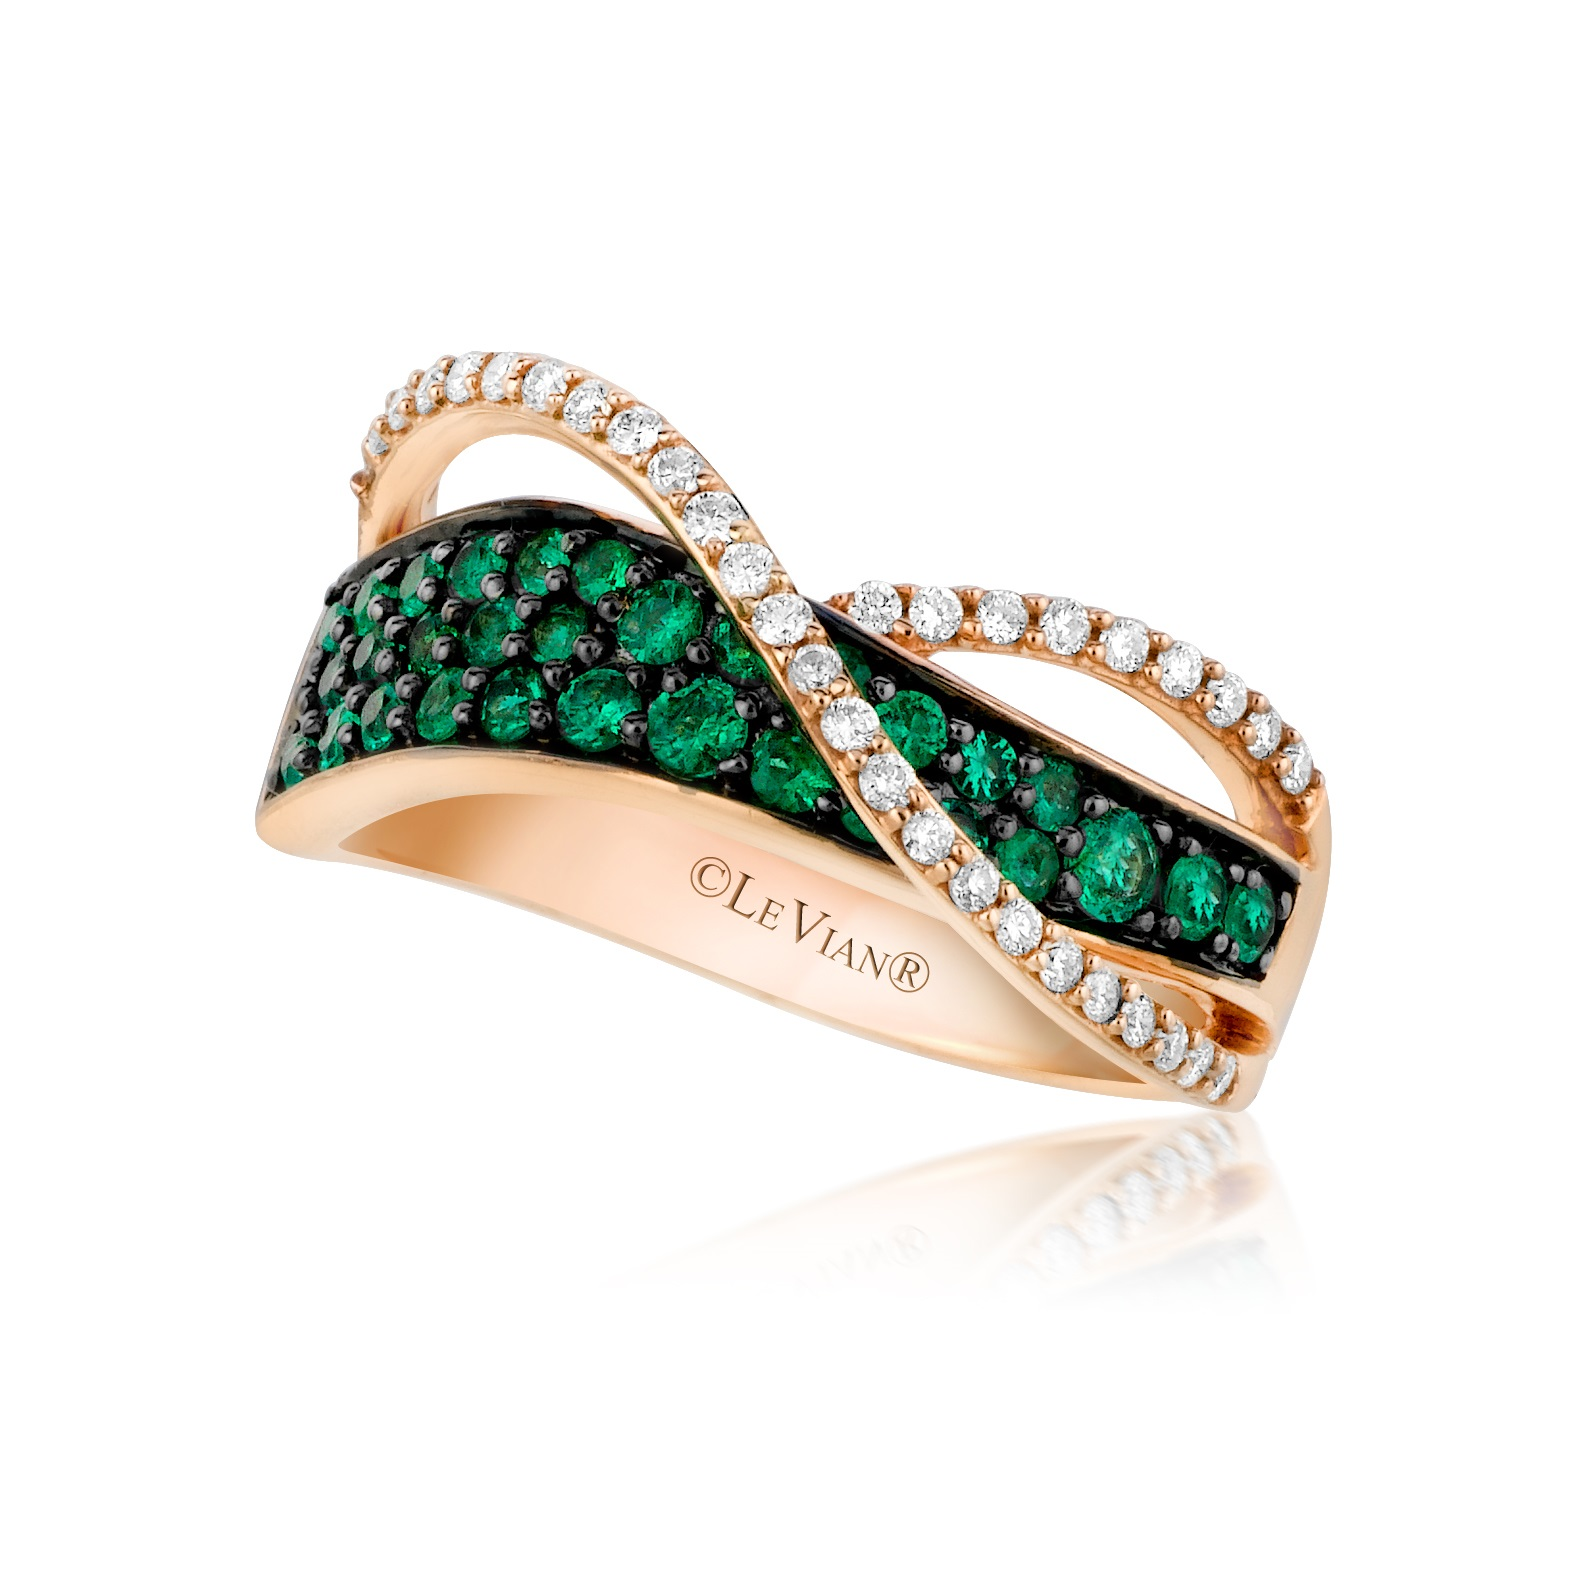 Le Vian - YQJK_64.jpg - brand name designer jewelry in Edenton, North Carolina